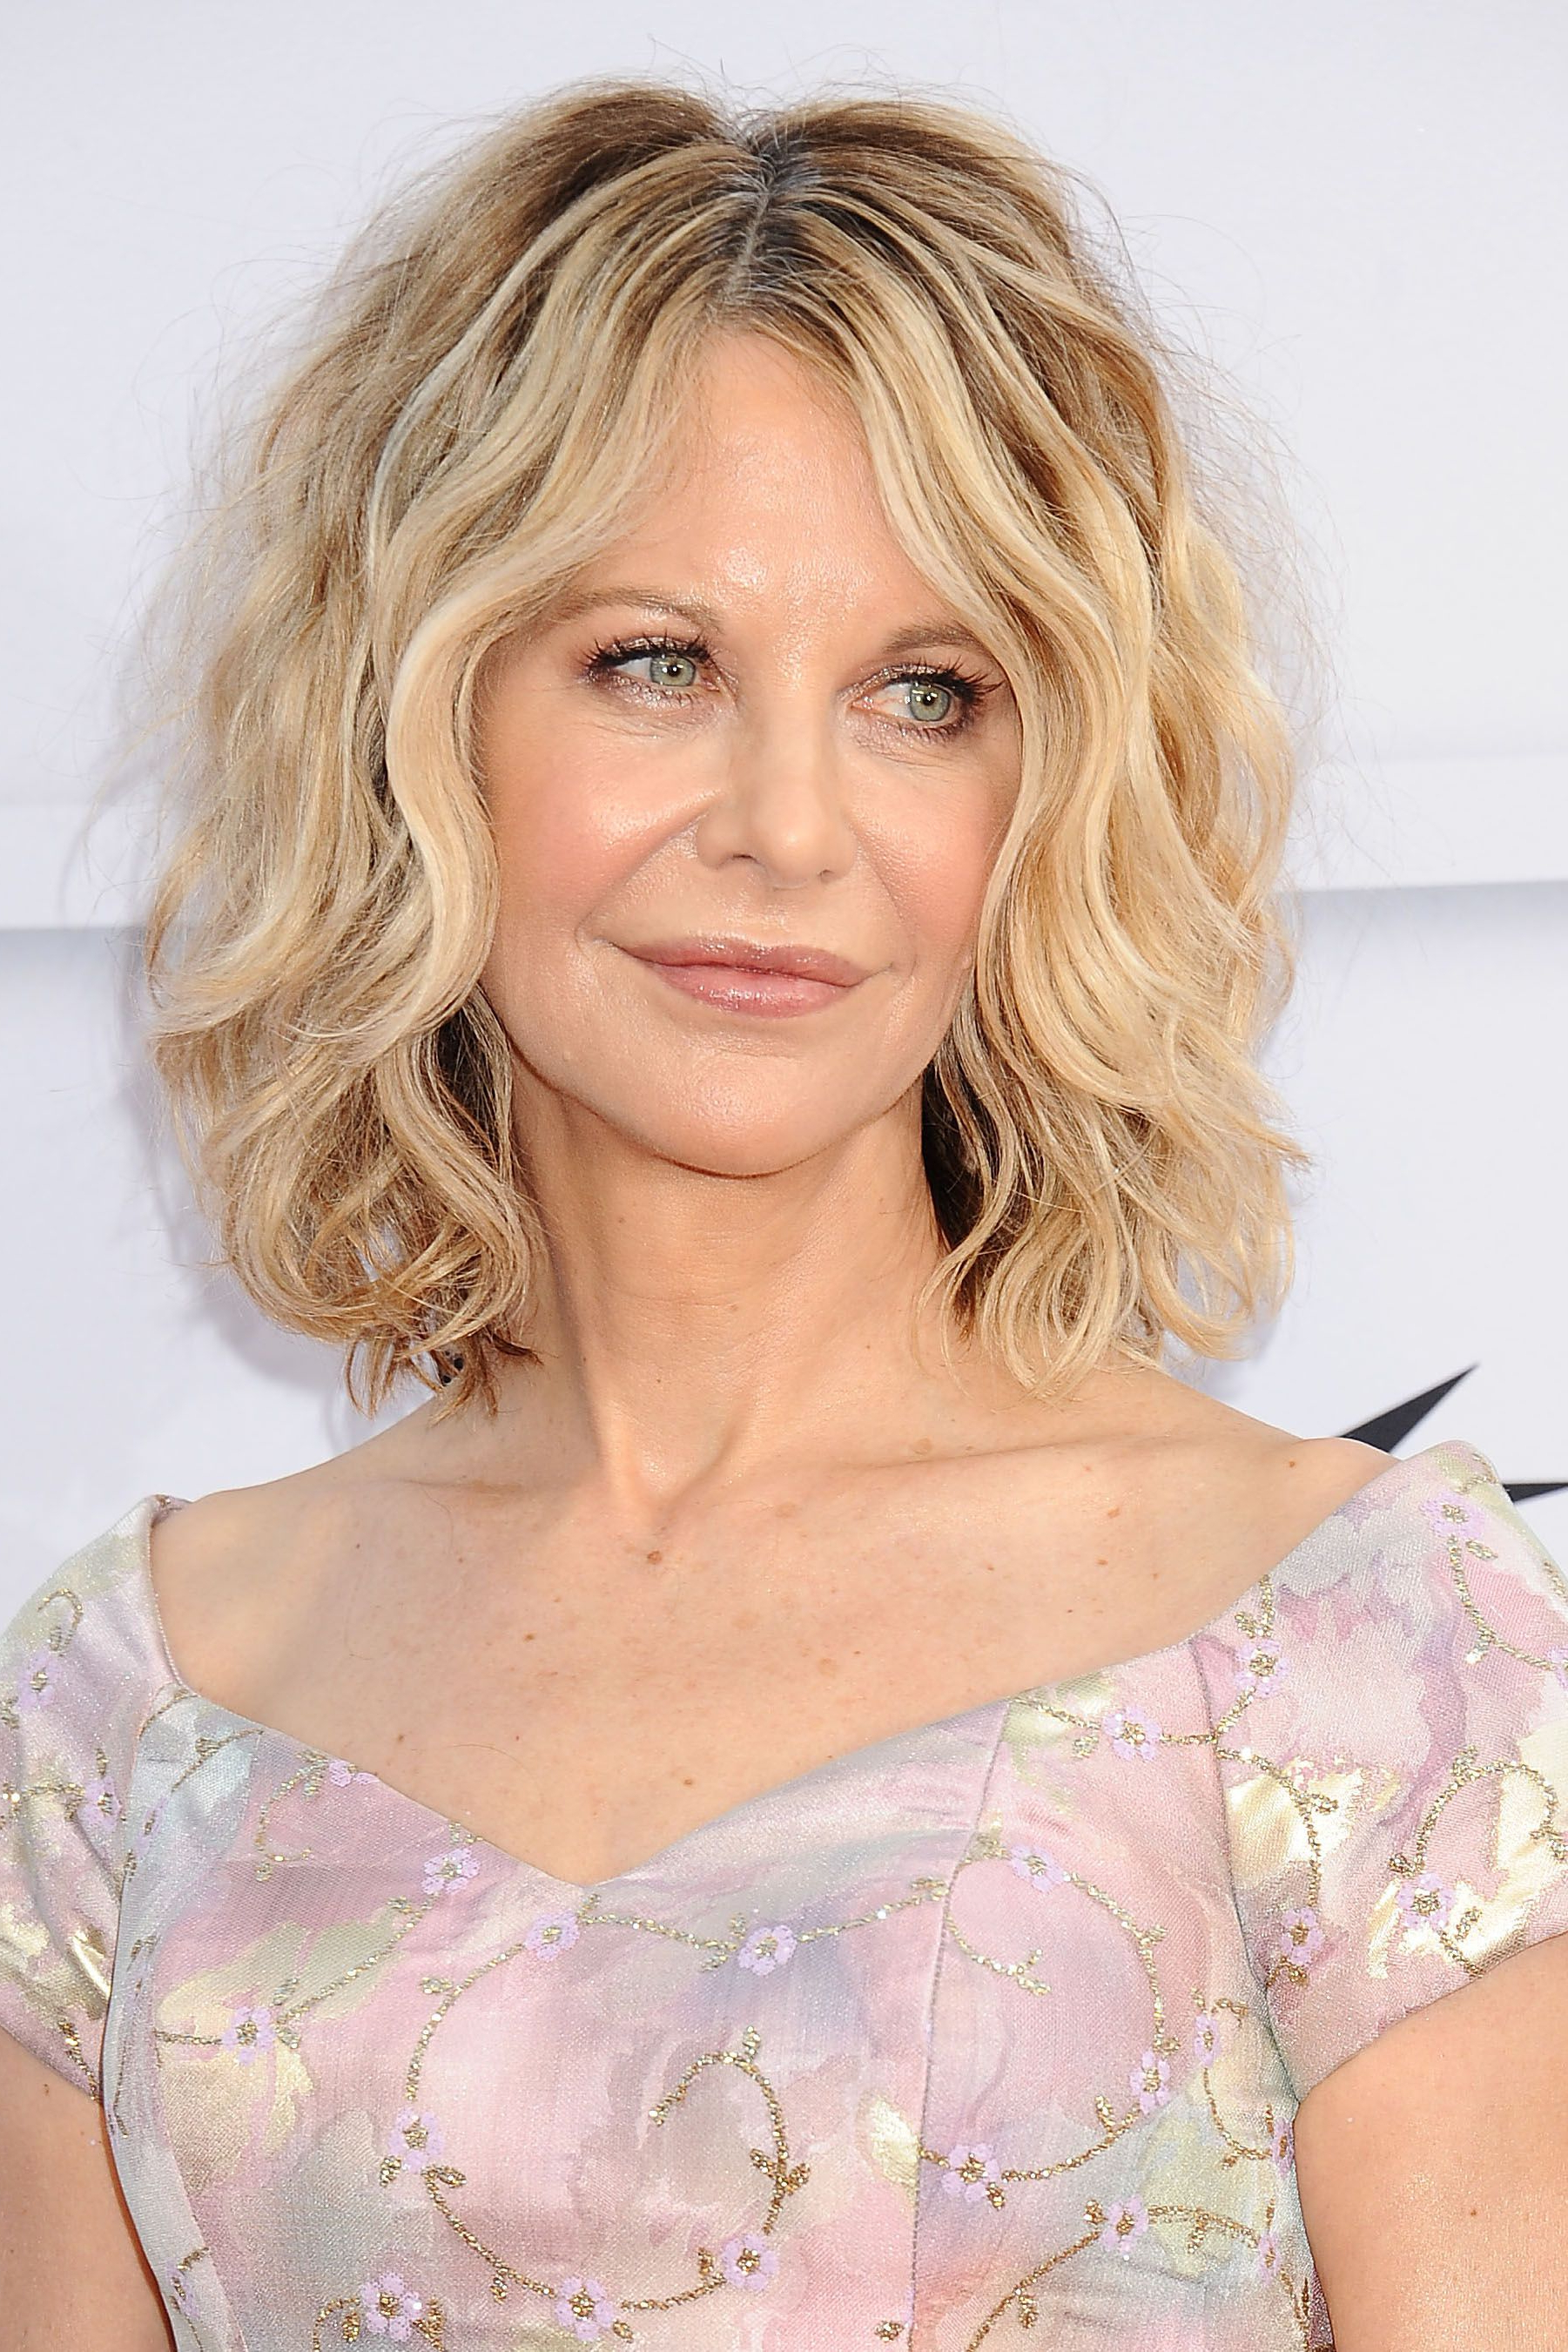 50 Best Hairstyles For Women Over 50 – Celebrity Haircuts Over 50 With Regard To Short Layered Hairstyles For Fine Hair Over  (View 19 of 25)